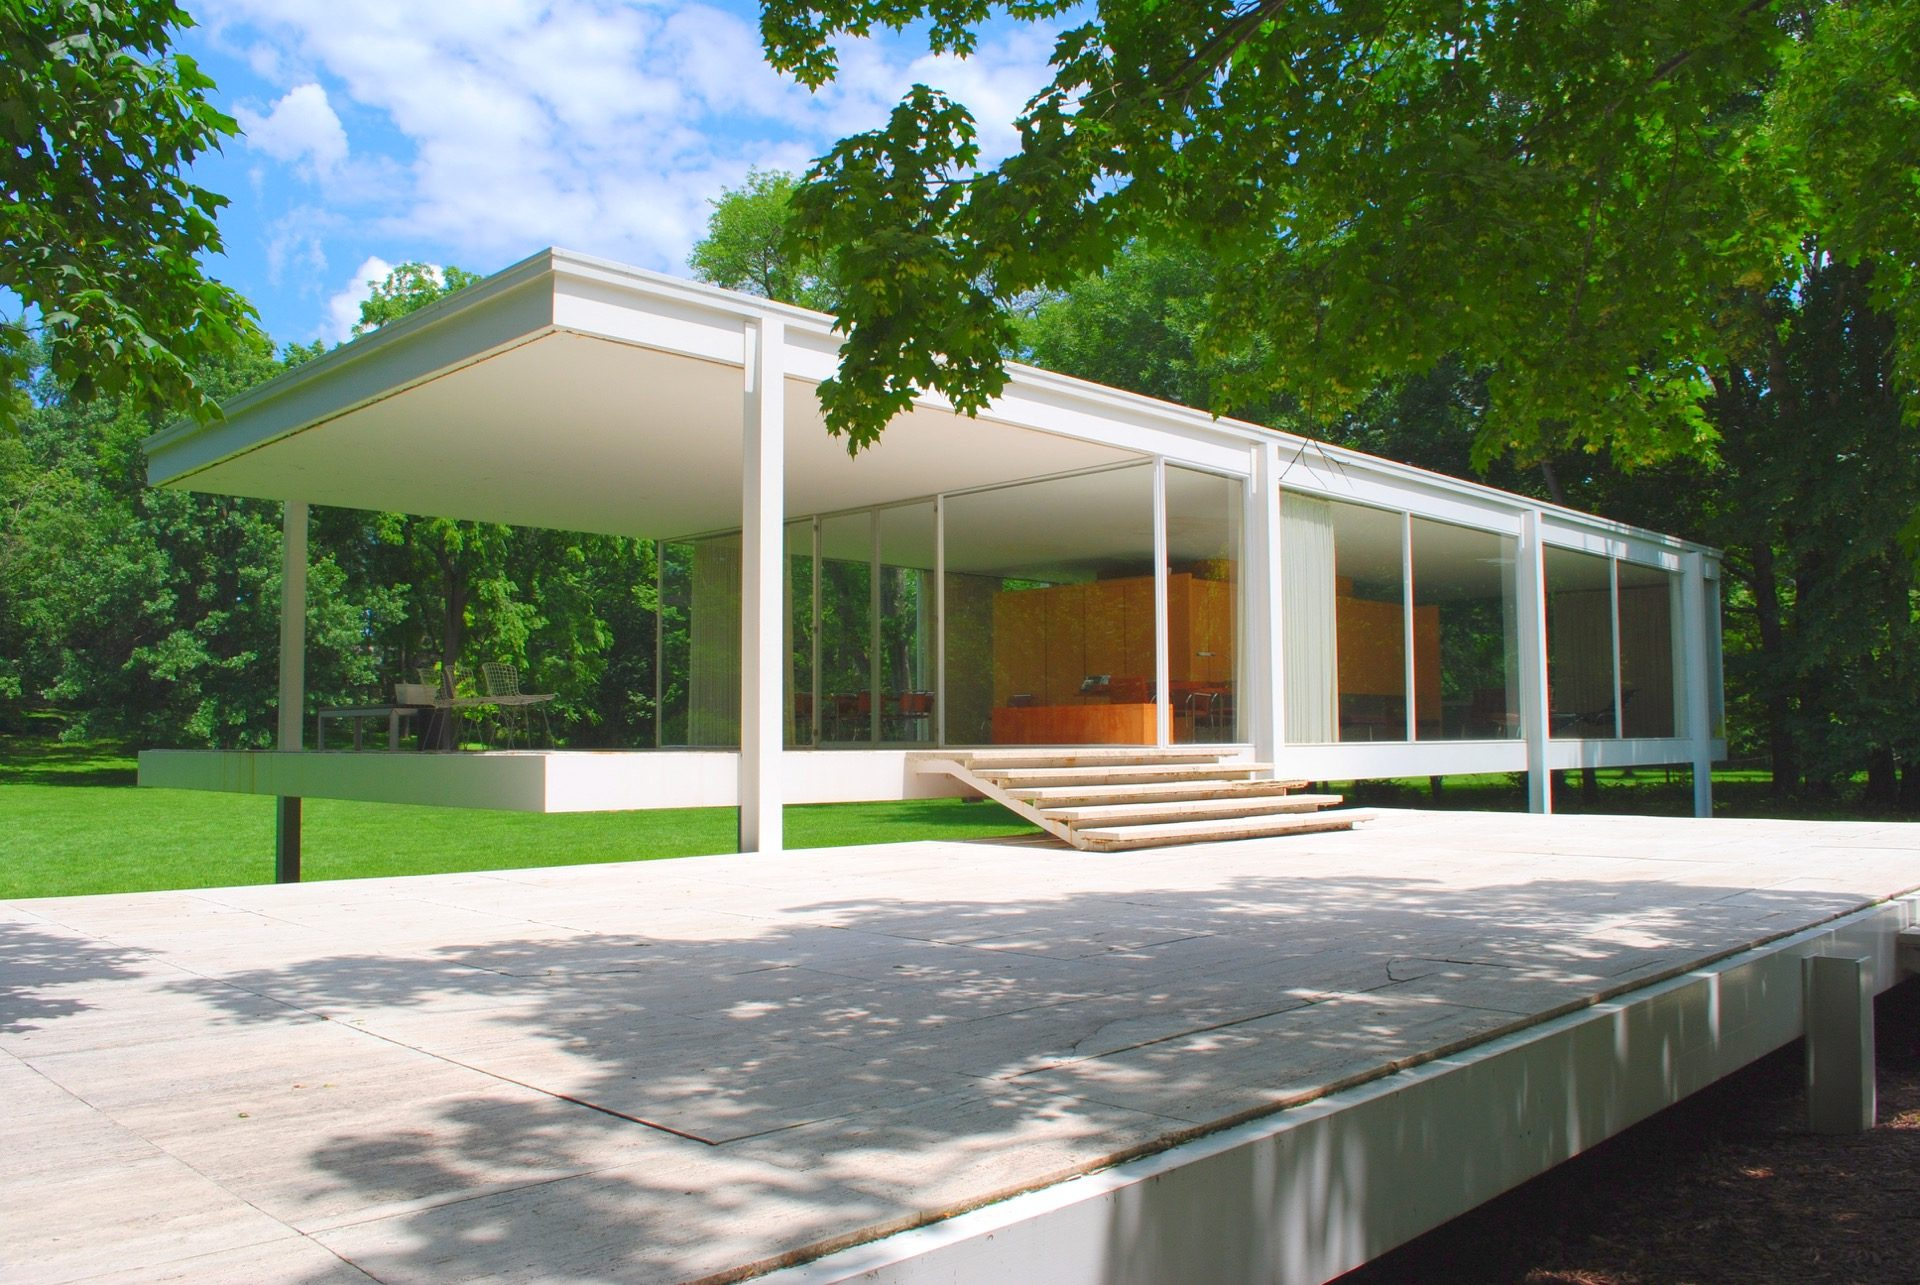 farnsworth house mies van der rohe josh mings studio. Black Bedroom Furniture Sets. Home Design Ideas